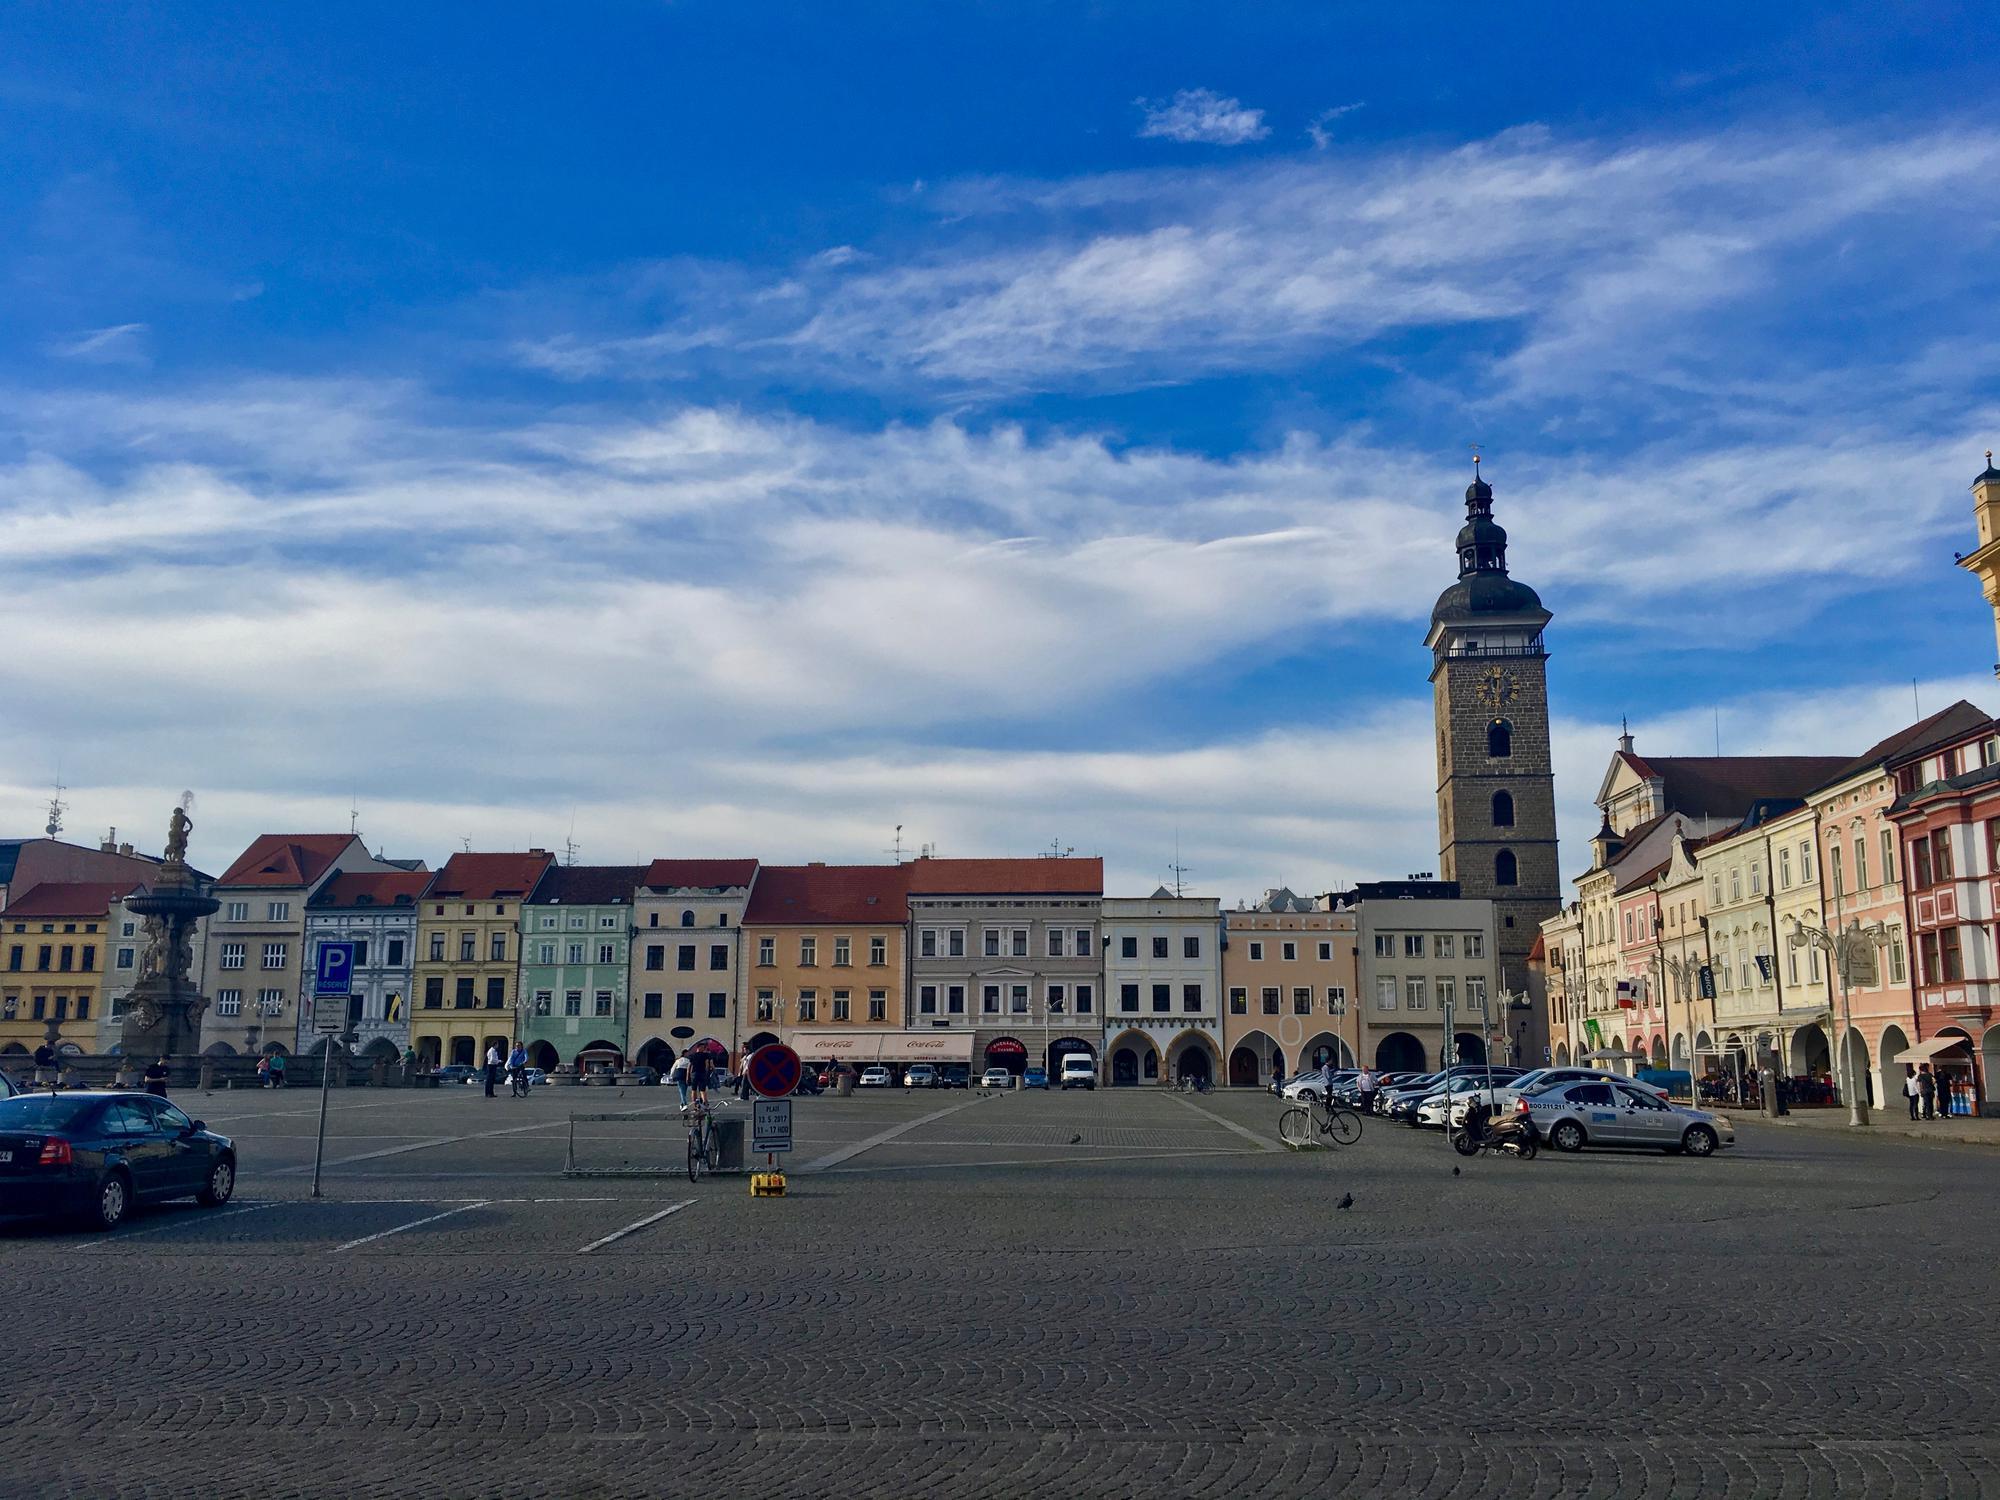 🇨🇿 Ceske Budejovice, Czech Republic, may 2017.